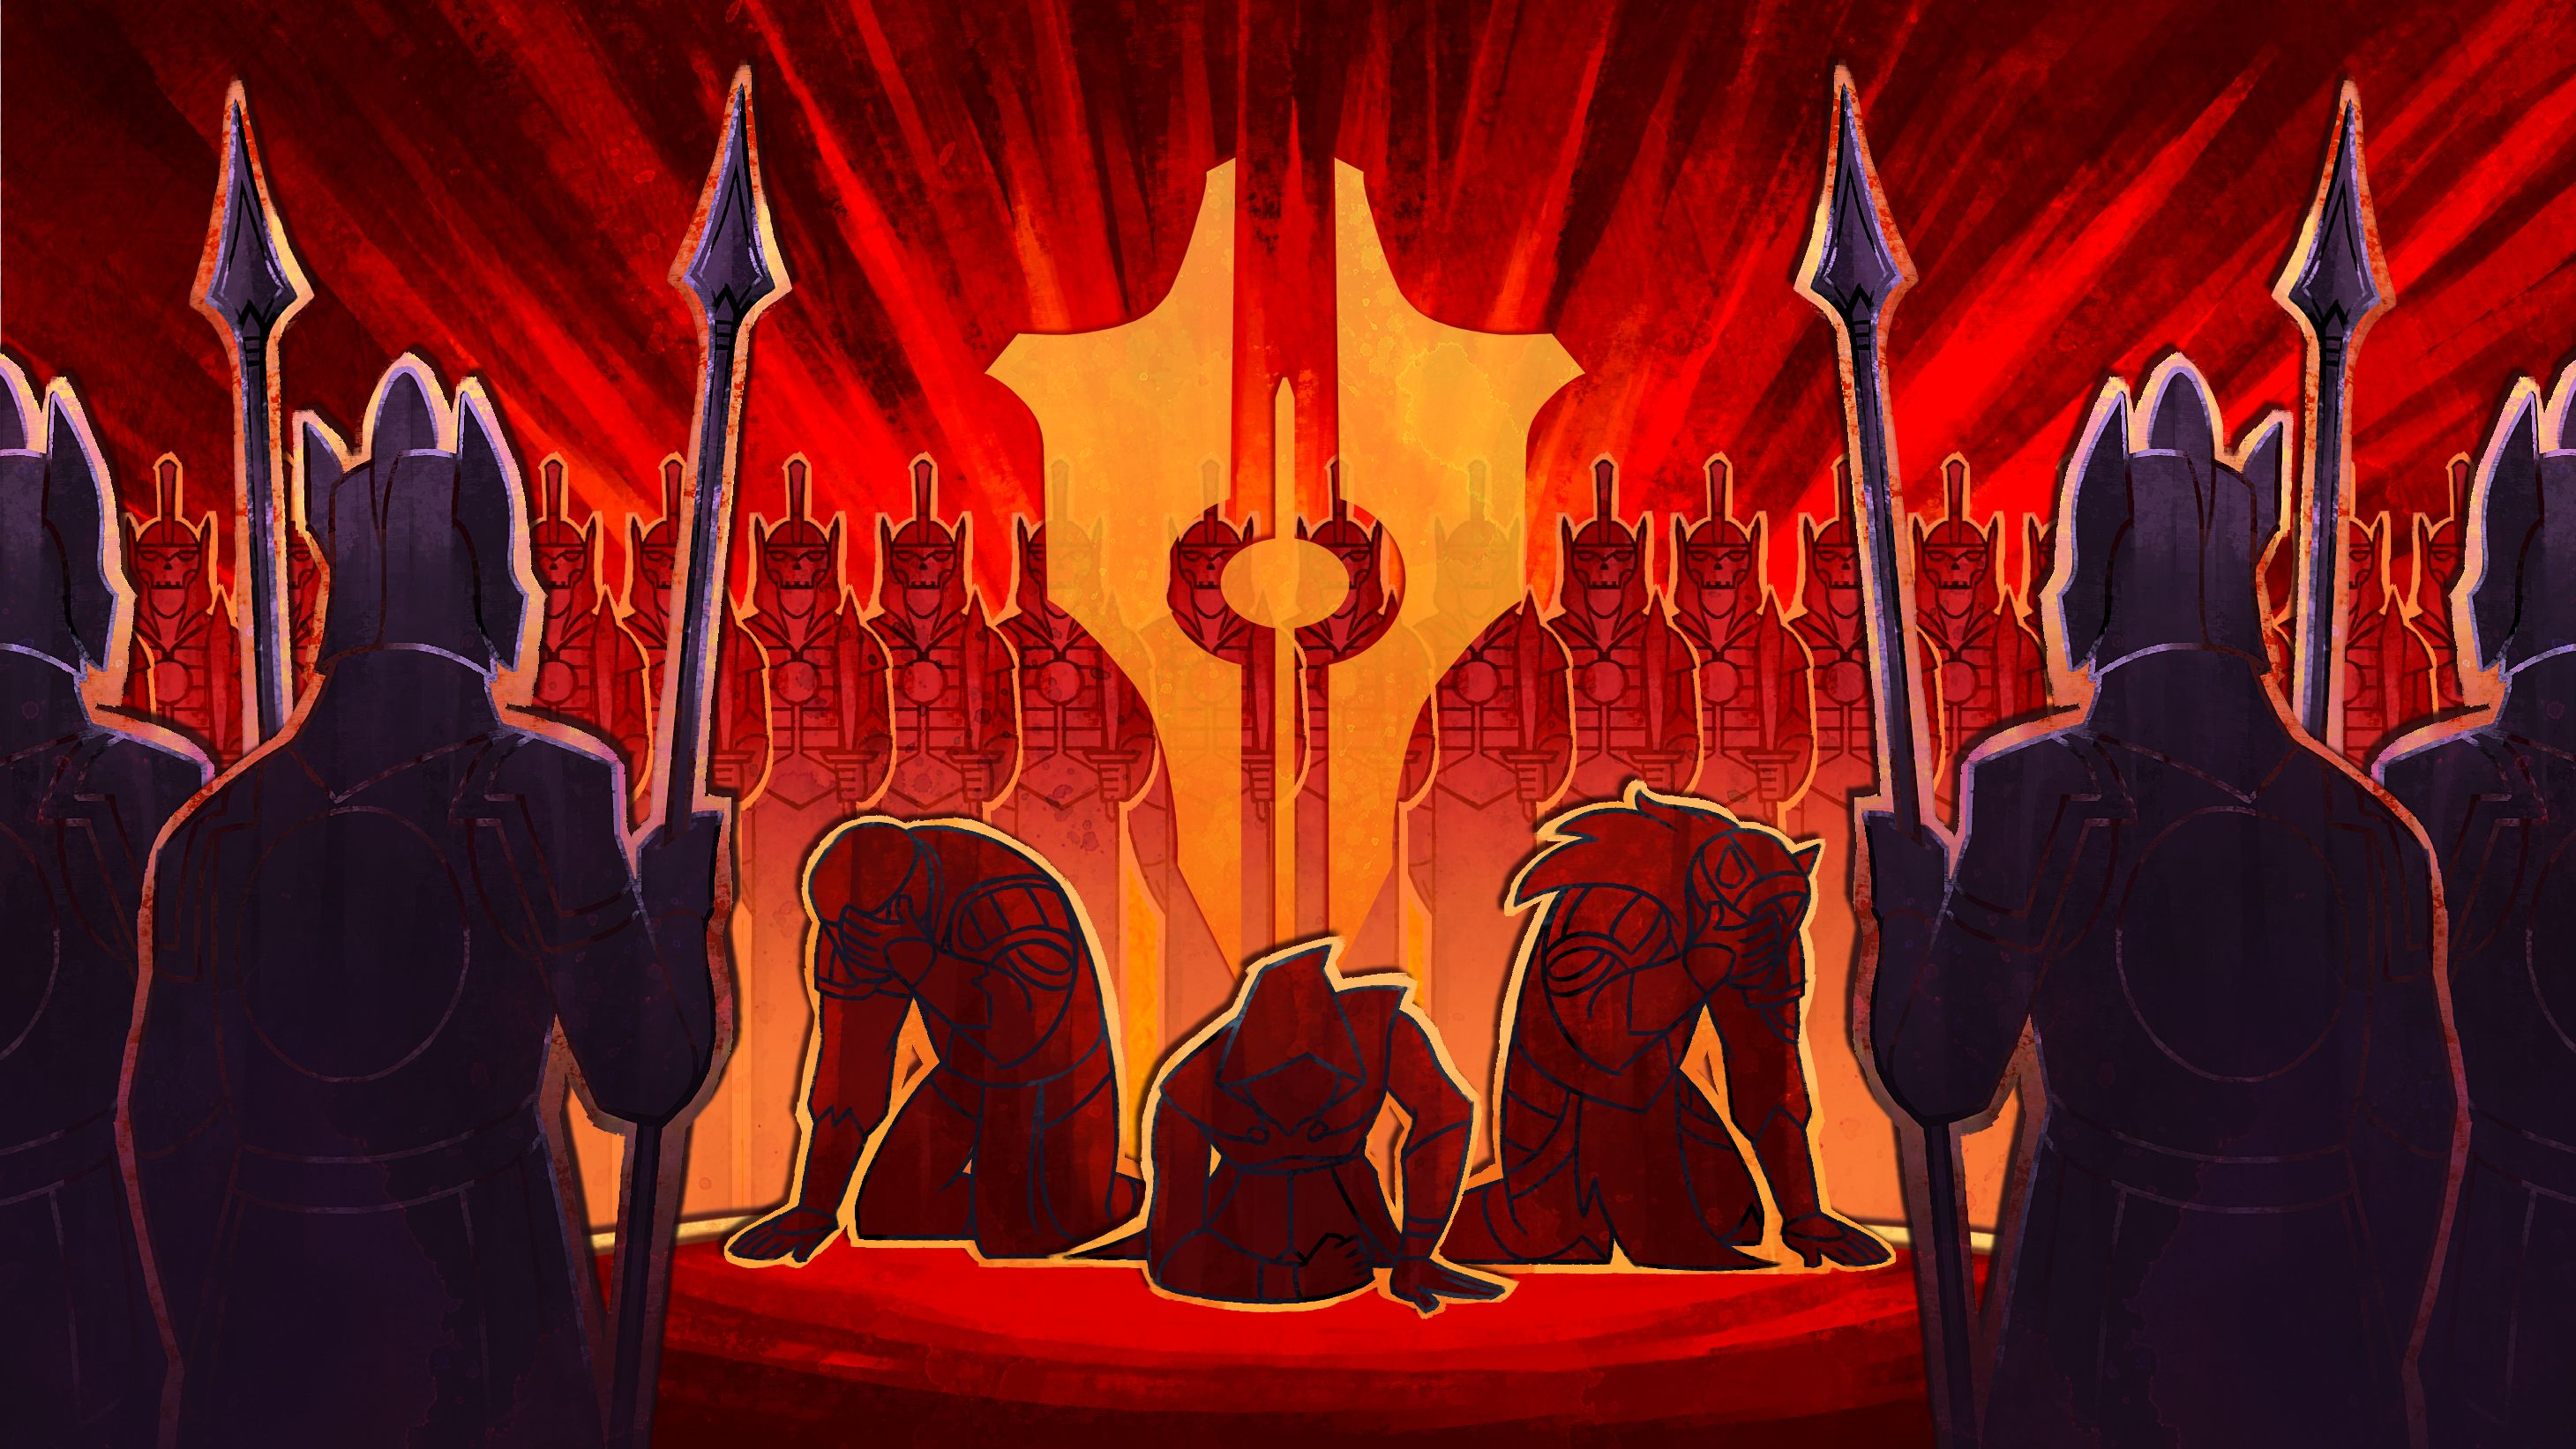 A screenshot from Tyranny showing three people kneeling and looking subjugated, whilst surrounded by an army of menacing skeletons